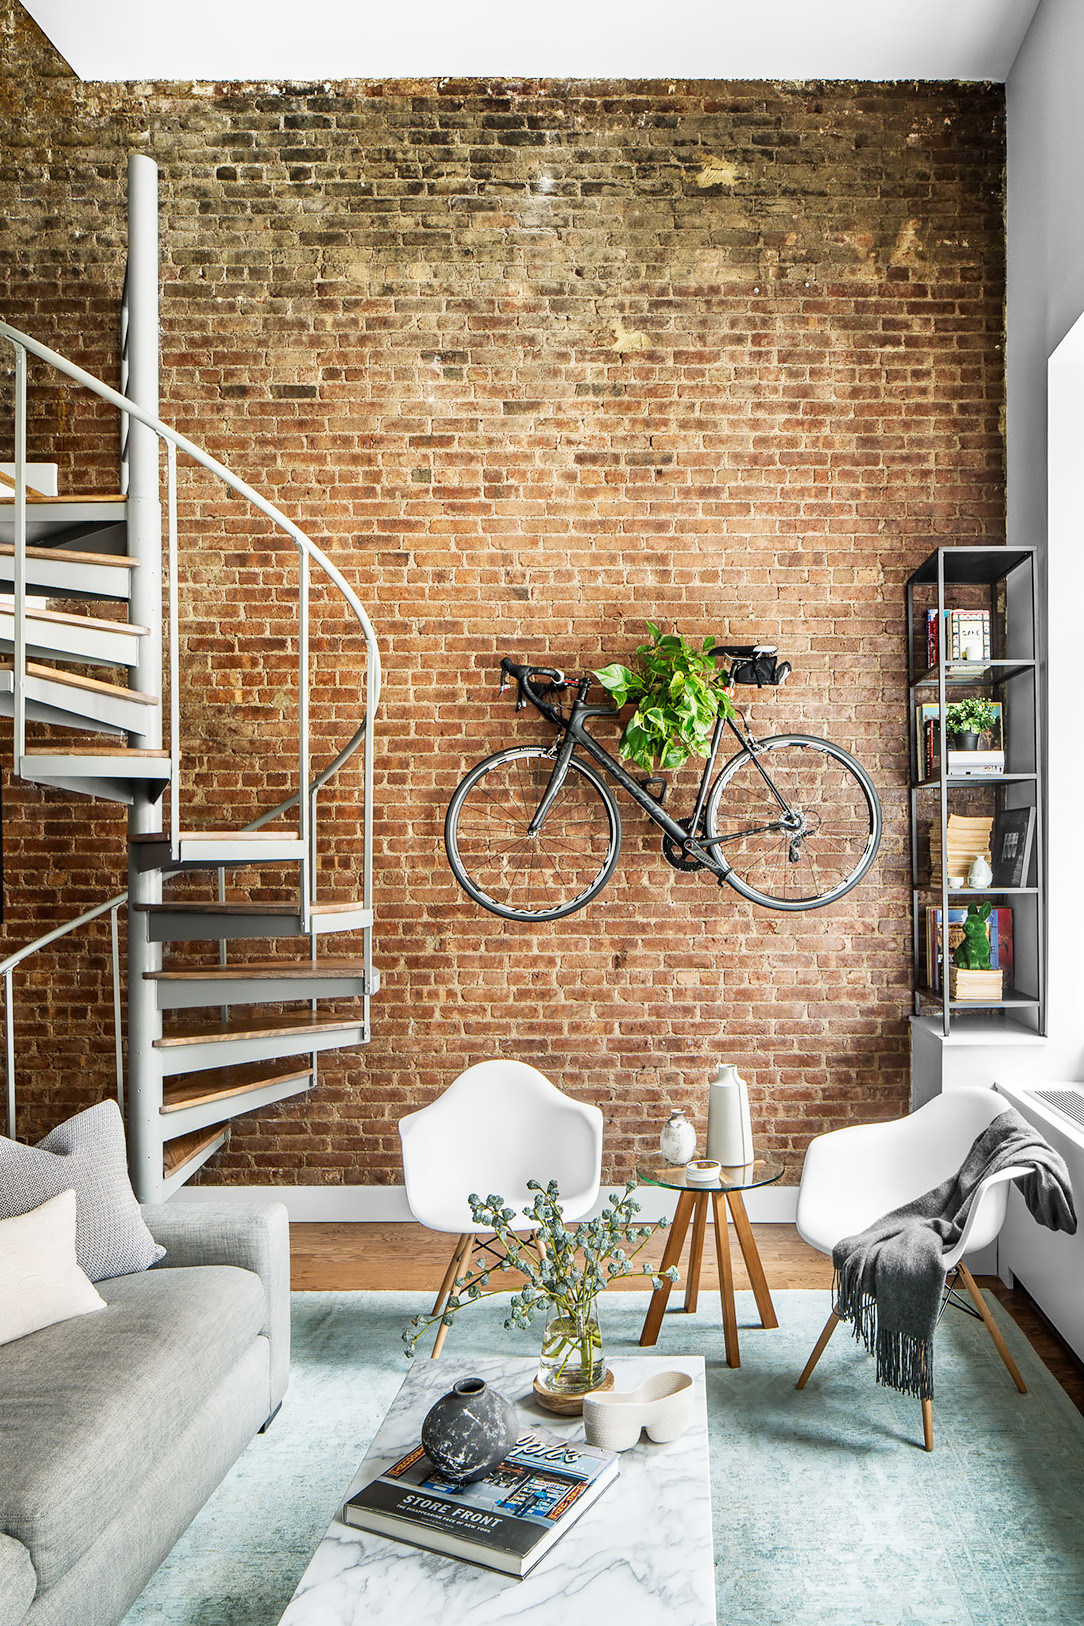 What's Hot on Pinterest 5 New York Industrial Lofts 1